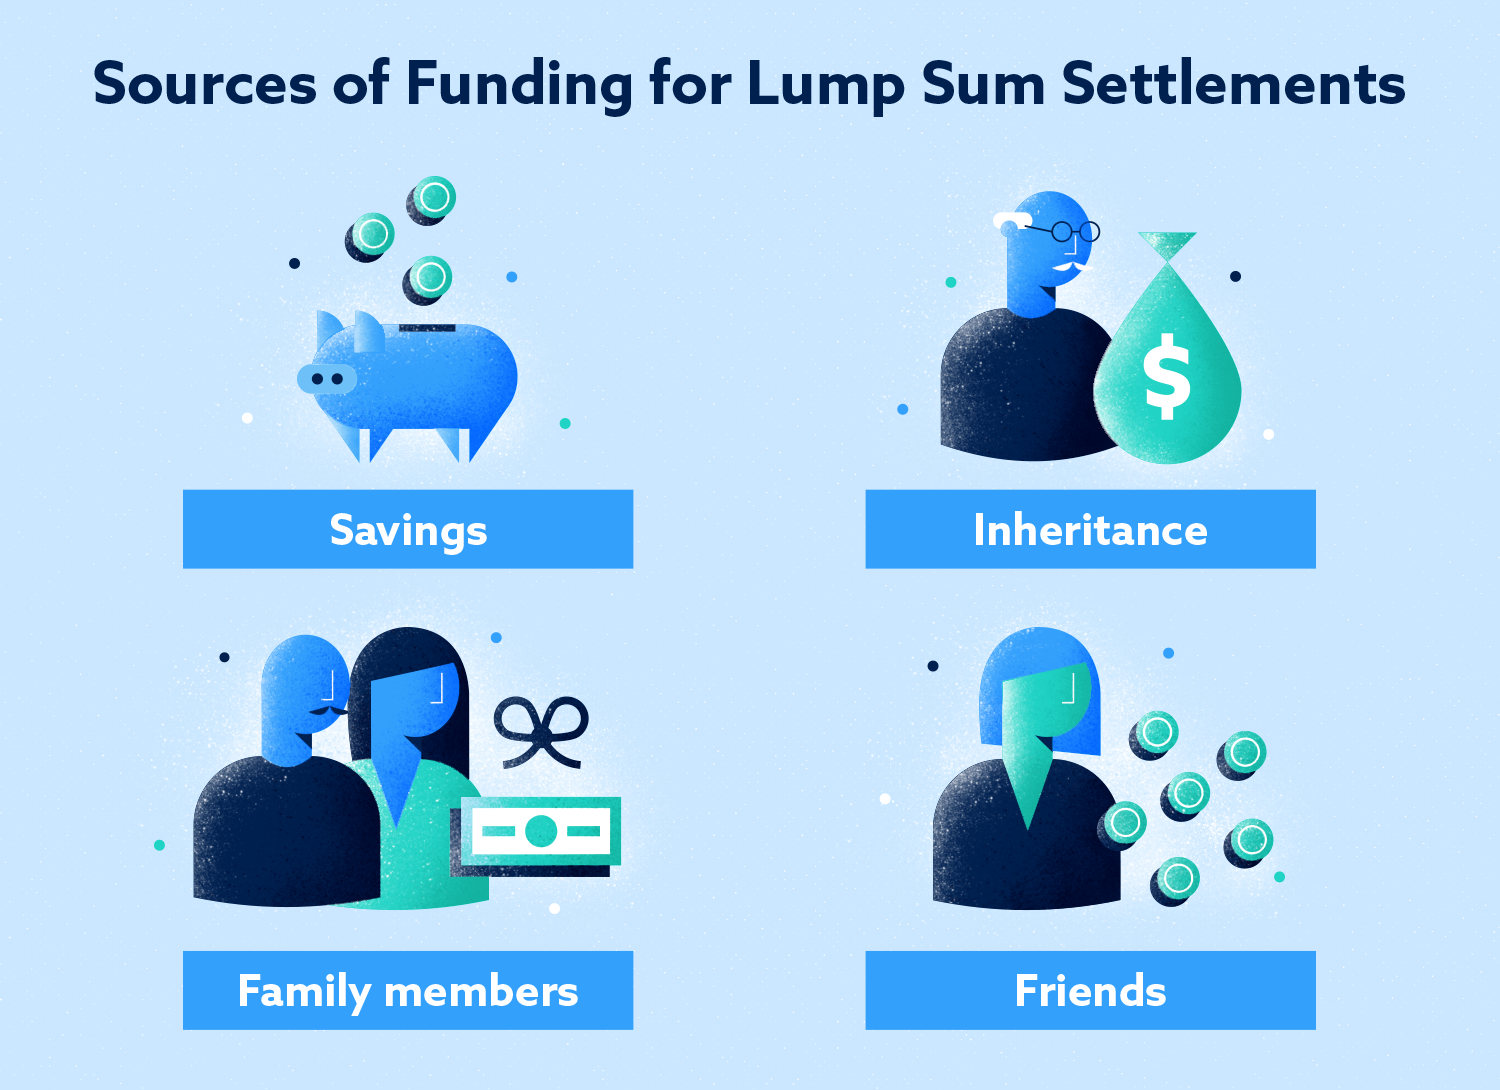 Sources of Funding for Lump Sum Settlements Image